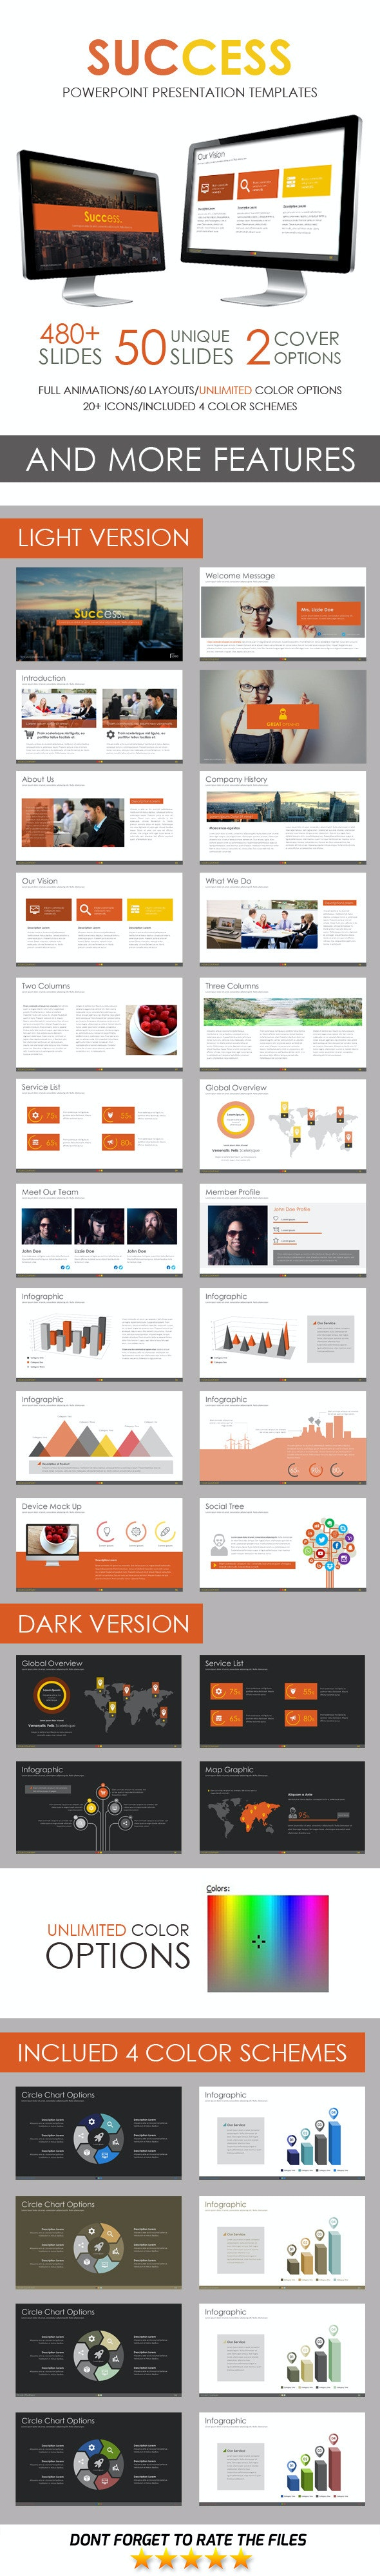 Success PowerPoint Template - Business PowerPoint Templates